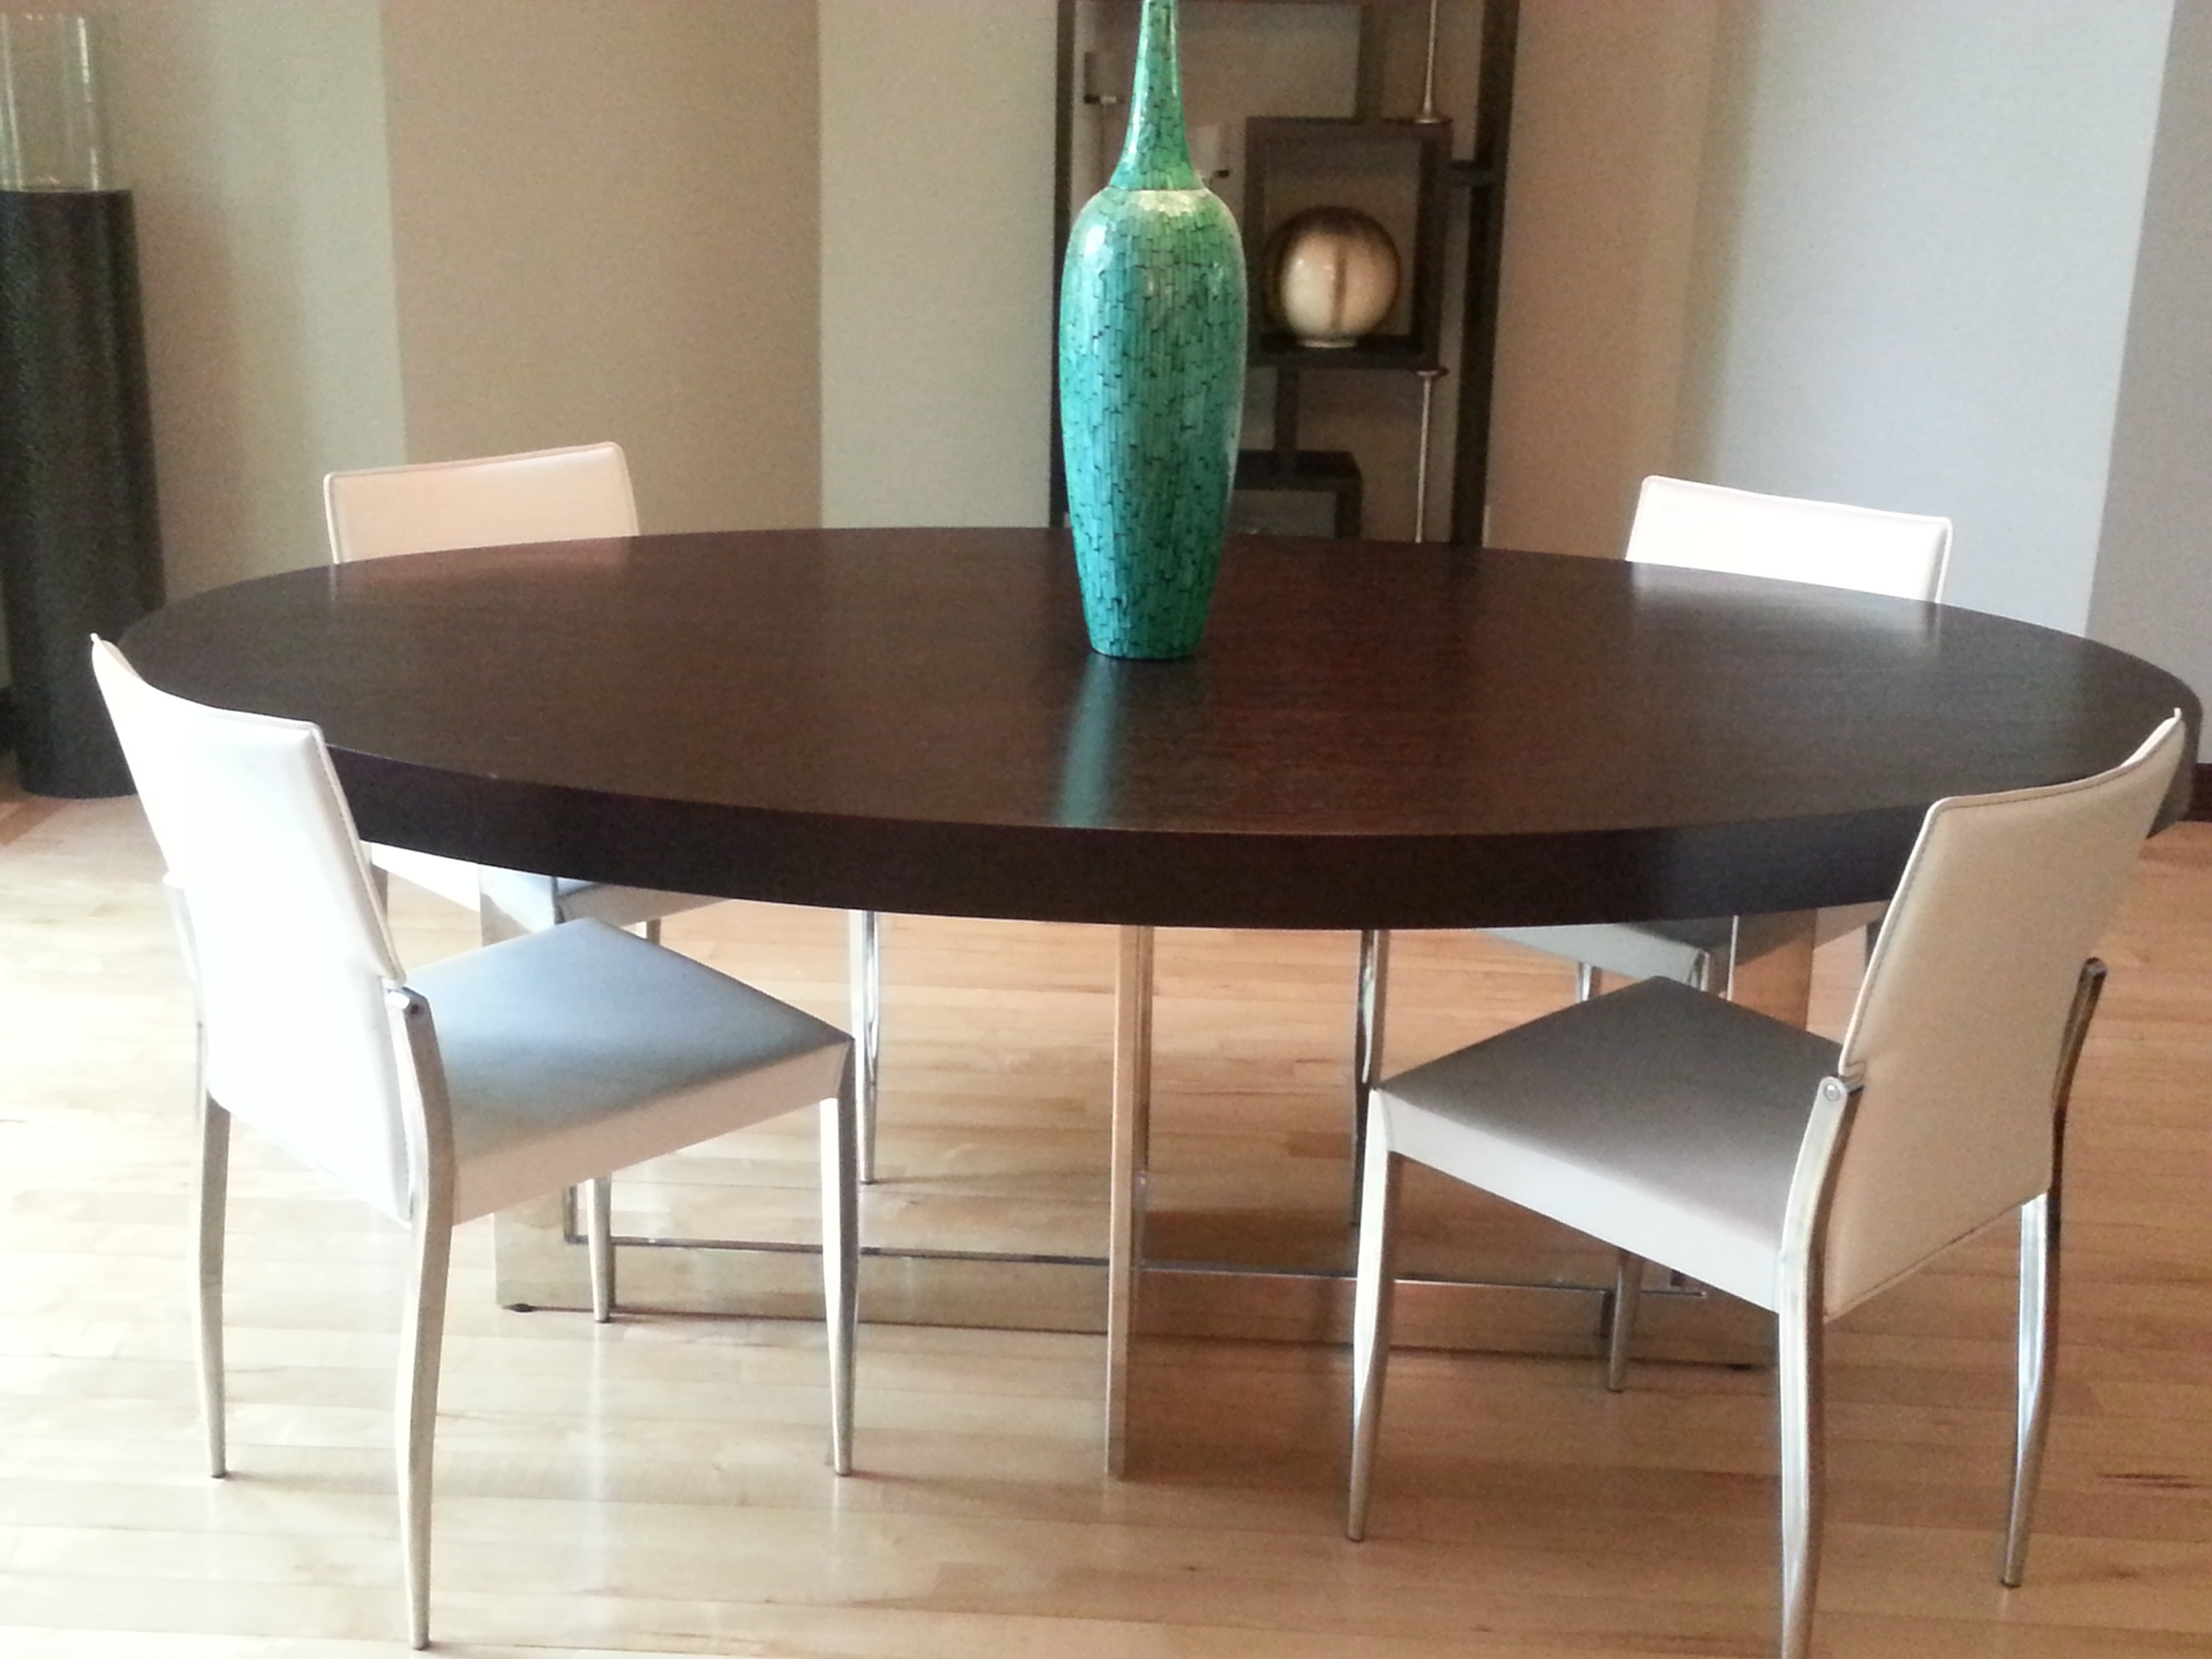 Famous Contemporary Large Oval Dark Wood Dining Table With Stainless Steel For Dining Tables Dark Wood (View 17 of 25)